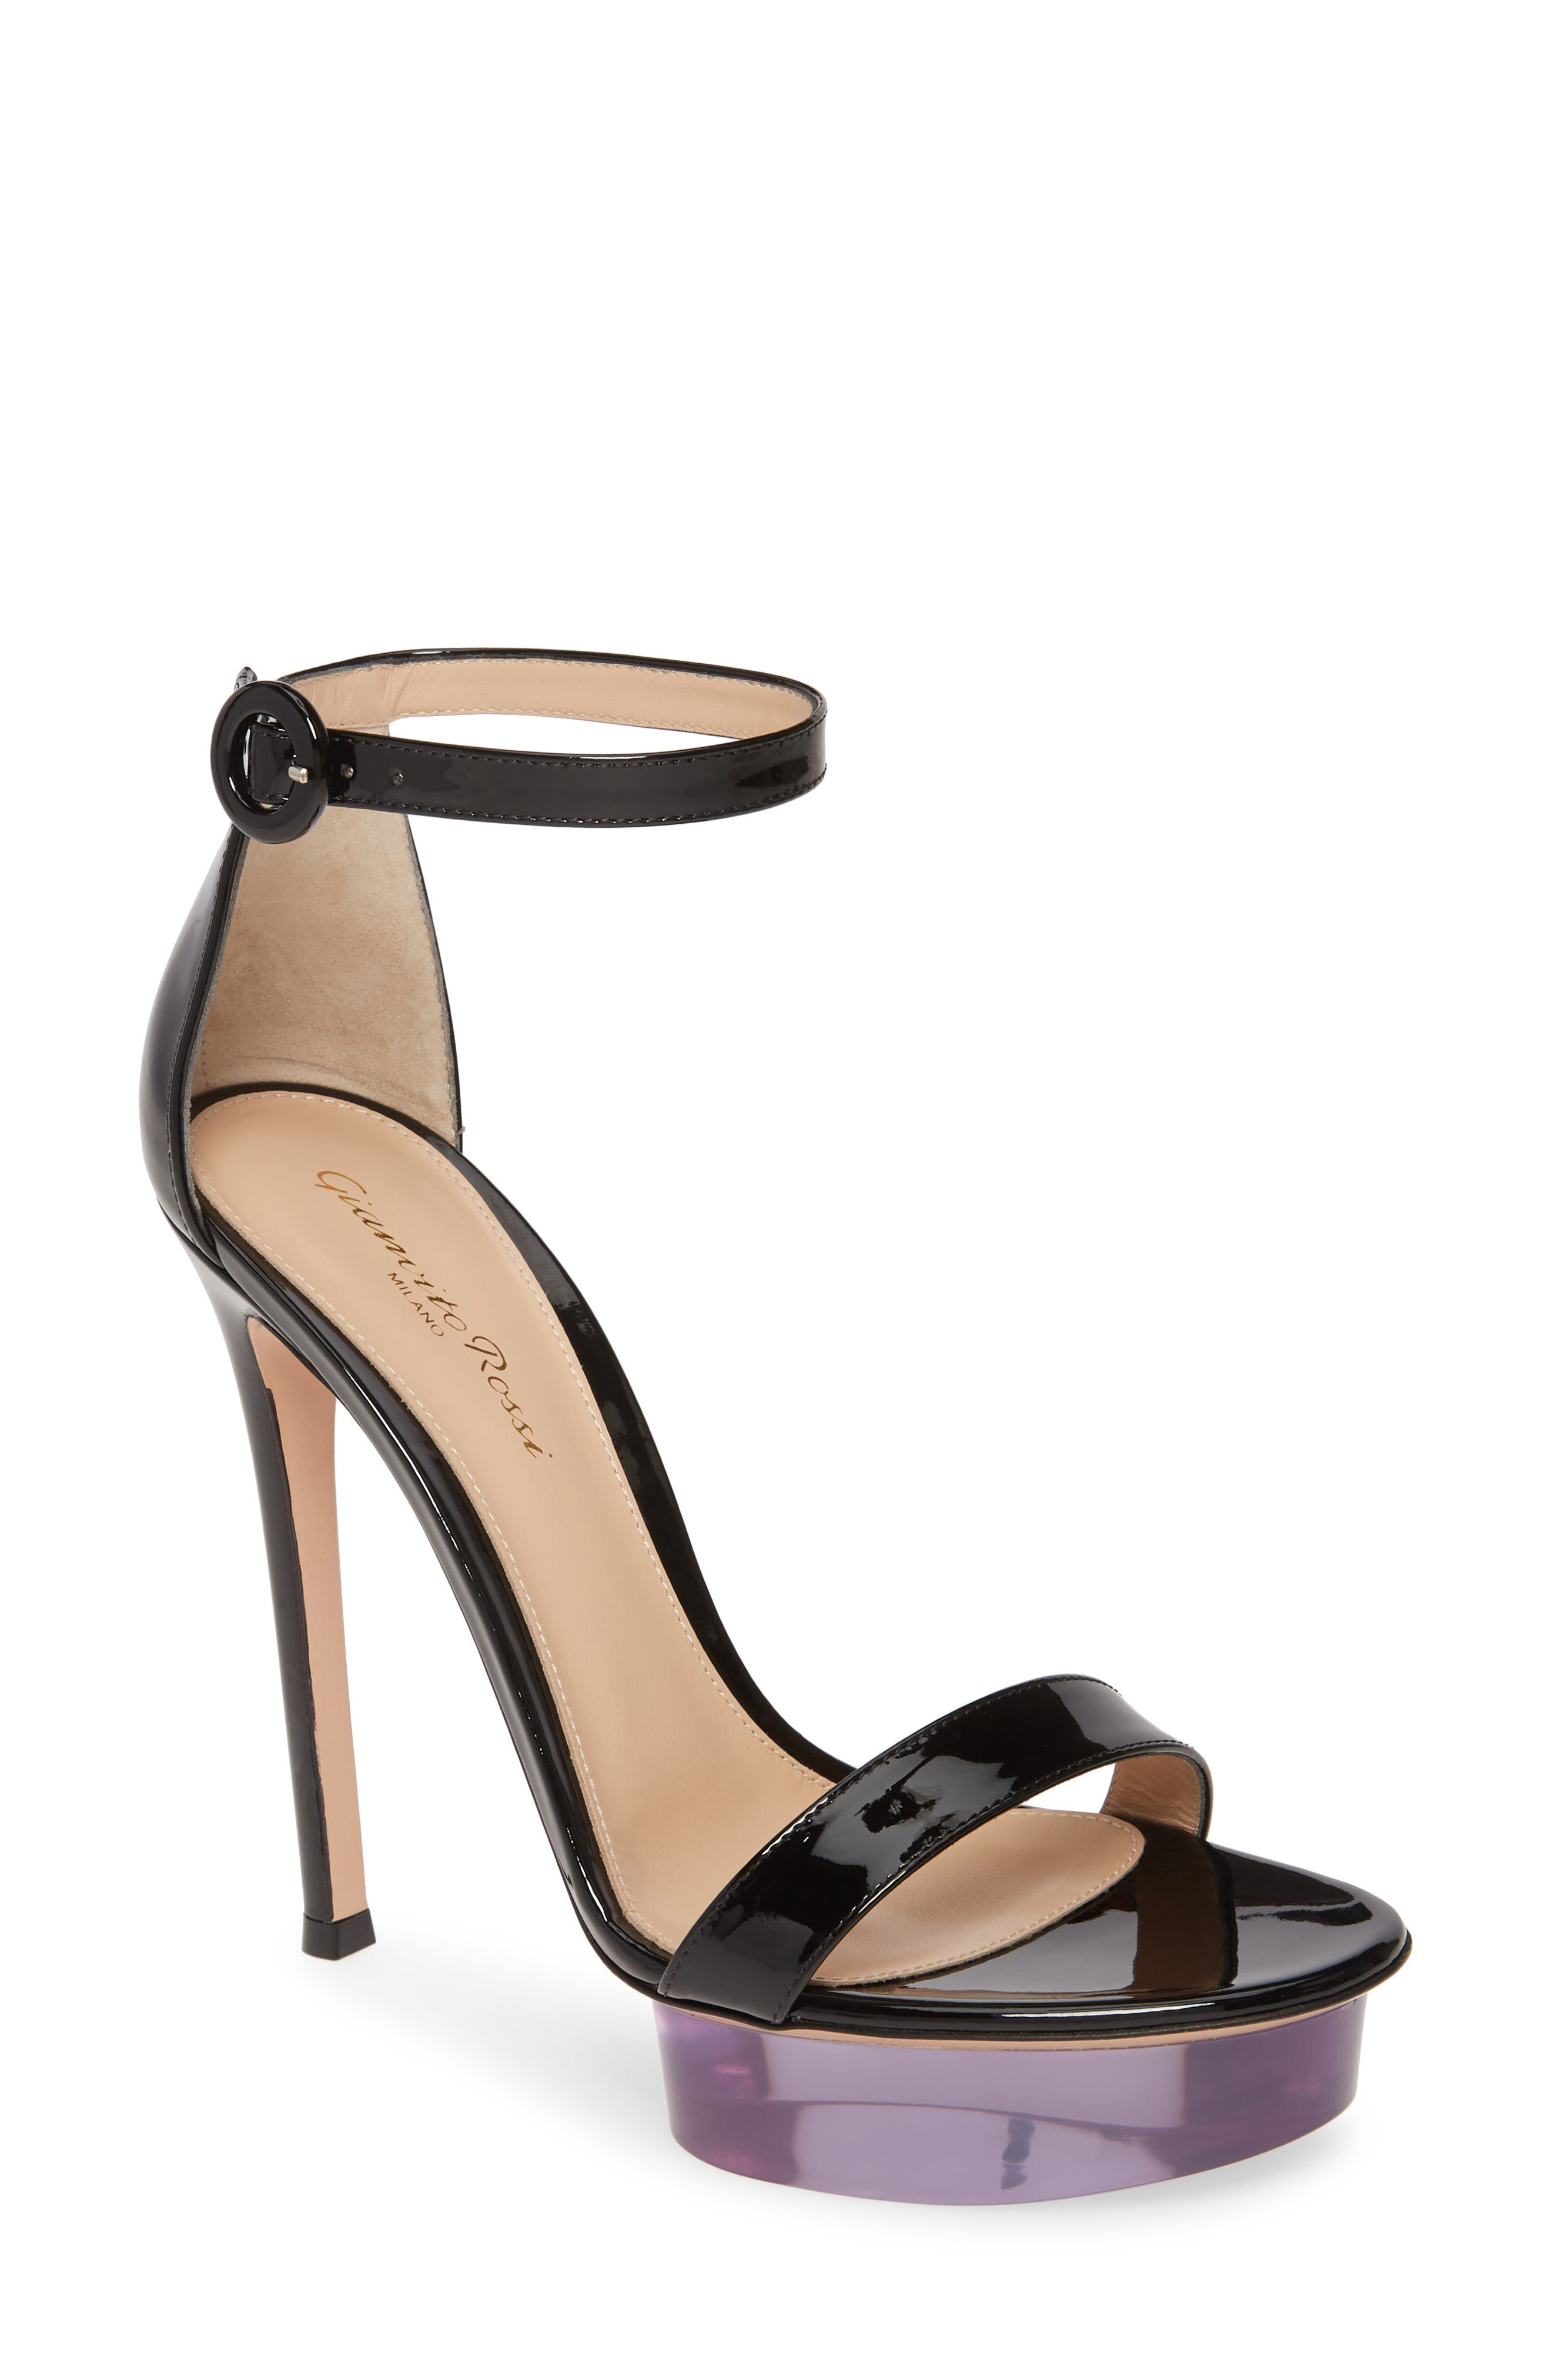 Gianvito Rossi Slippers Clear Platform Ankle Strap Sandal